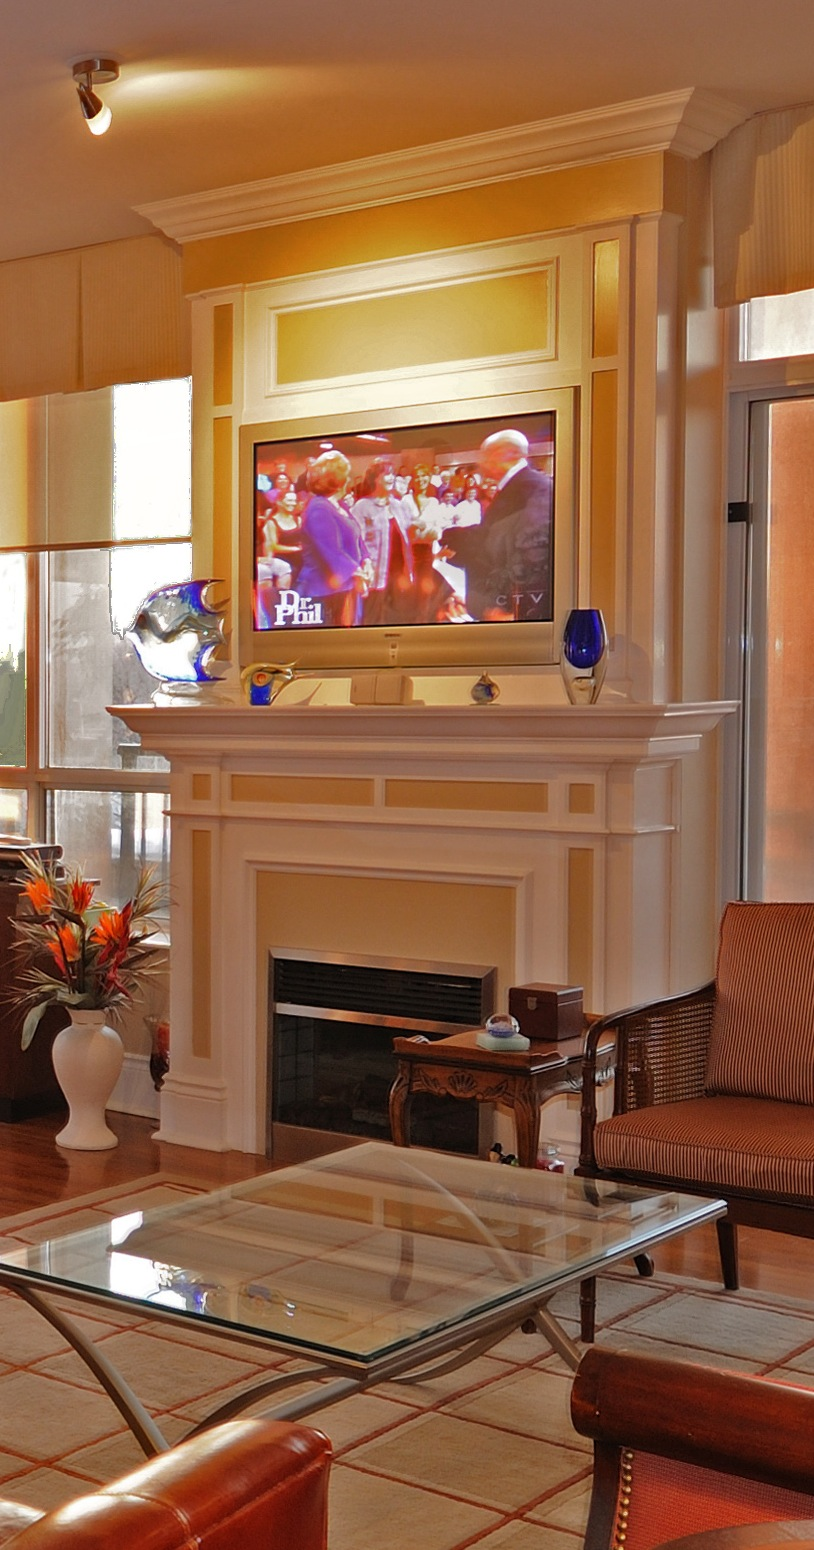 Fireplace At Sunset - Designed and Built by Spaces Custom Interiors